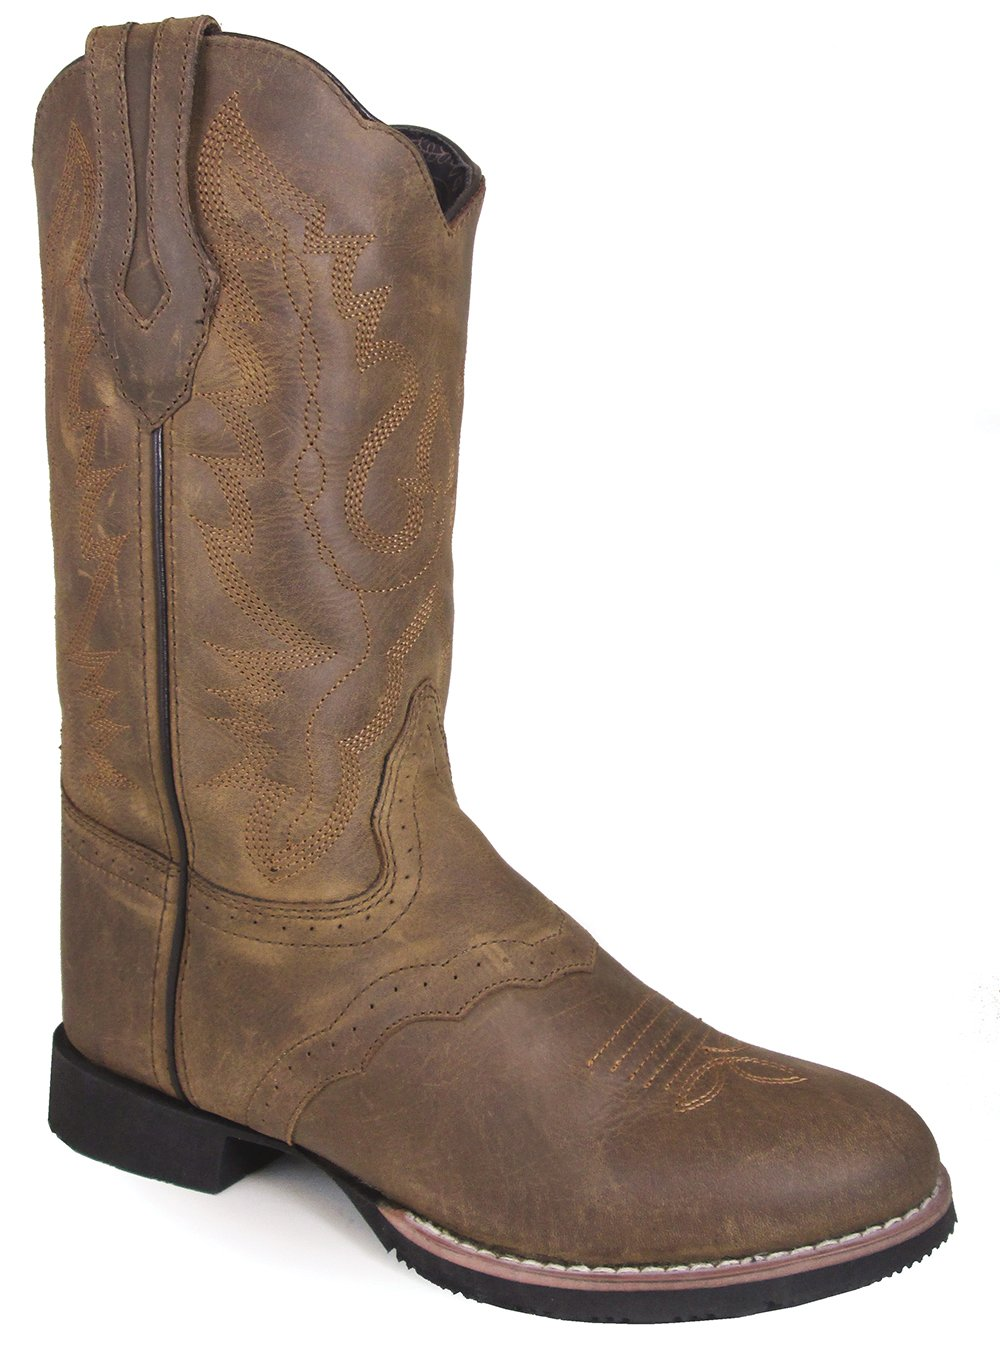 Smoky Mountain Women's Showdown Boot B01N52VO6G 9 B(M) US|Brown Distress